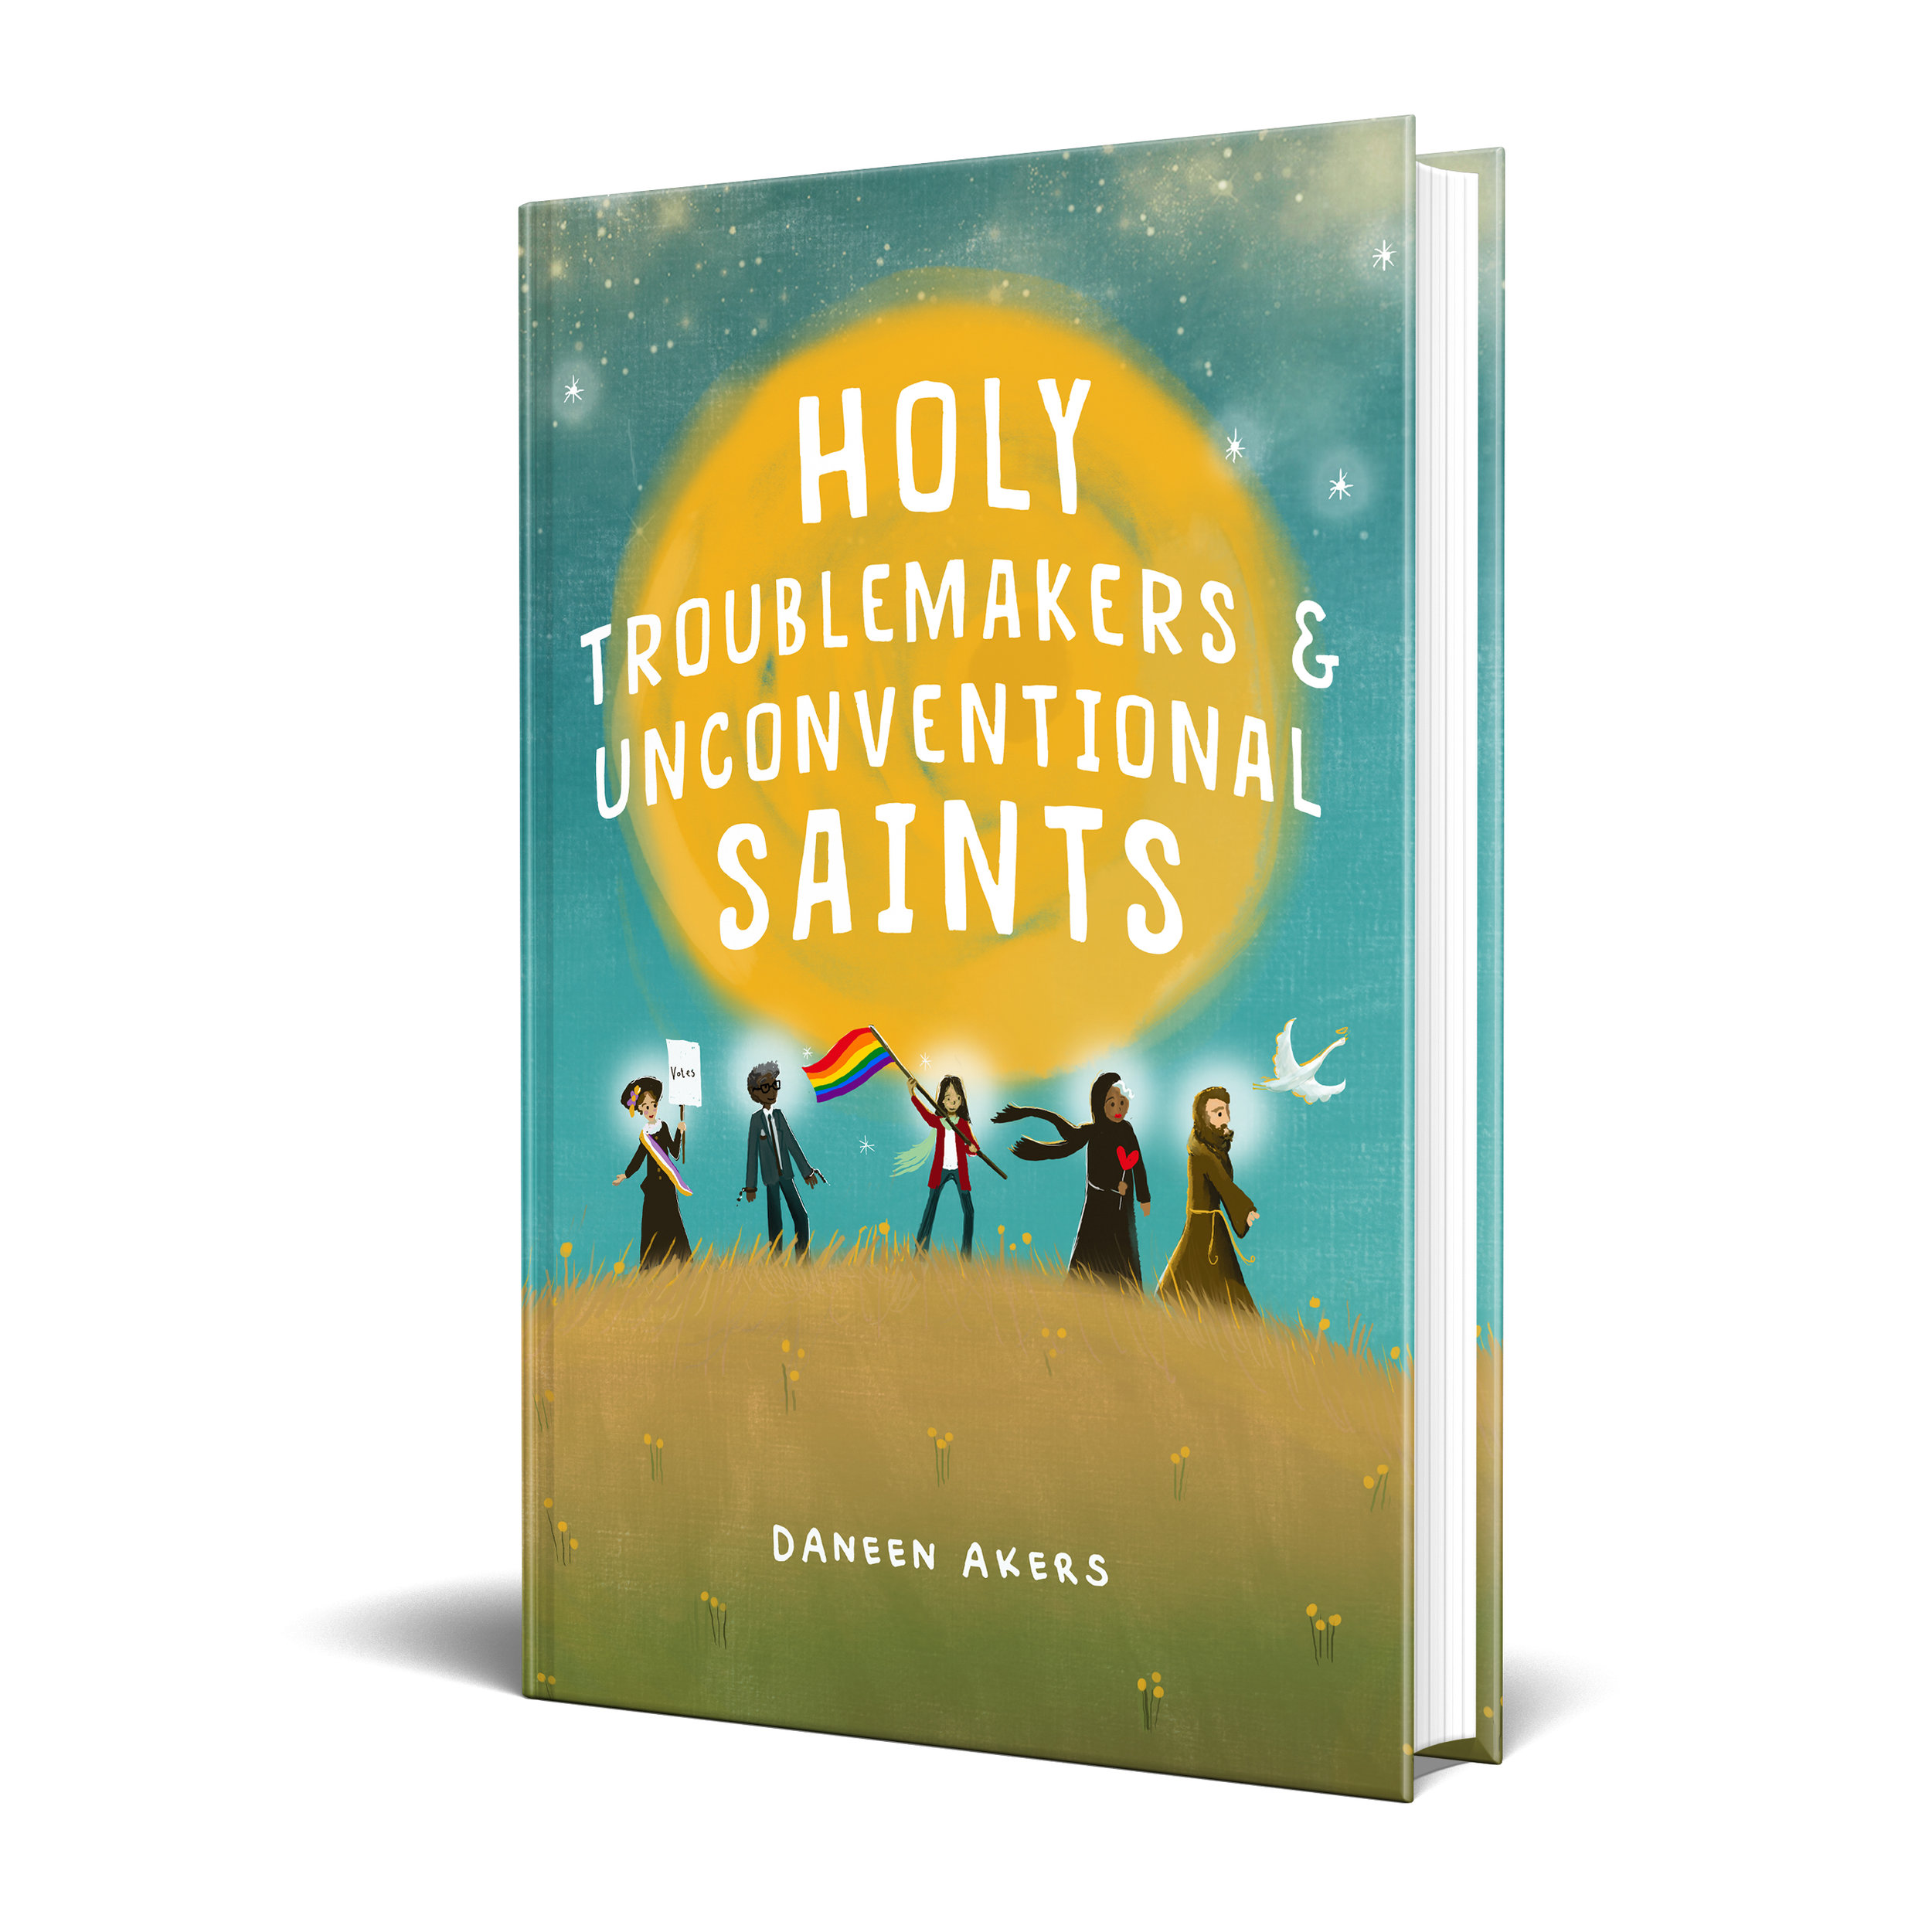 Holy Troublemakers & Unconventional Saints - Cover Mockup 1